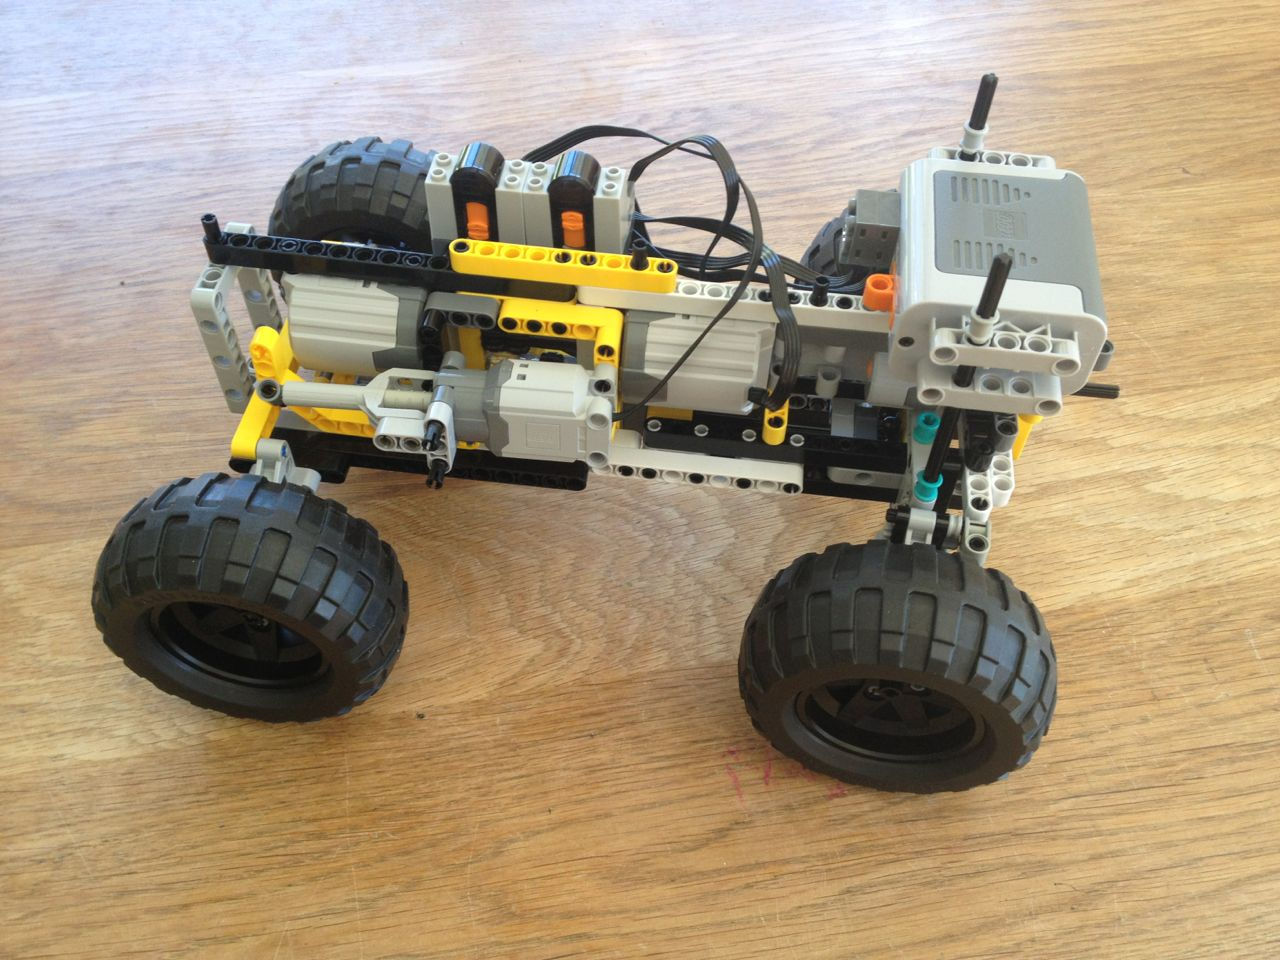 Building An Off Road Car With Lego Technic Christoph Bartneck Phd